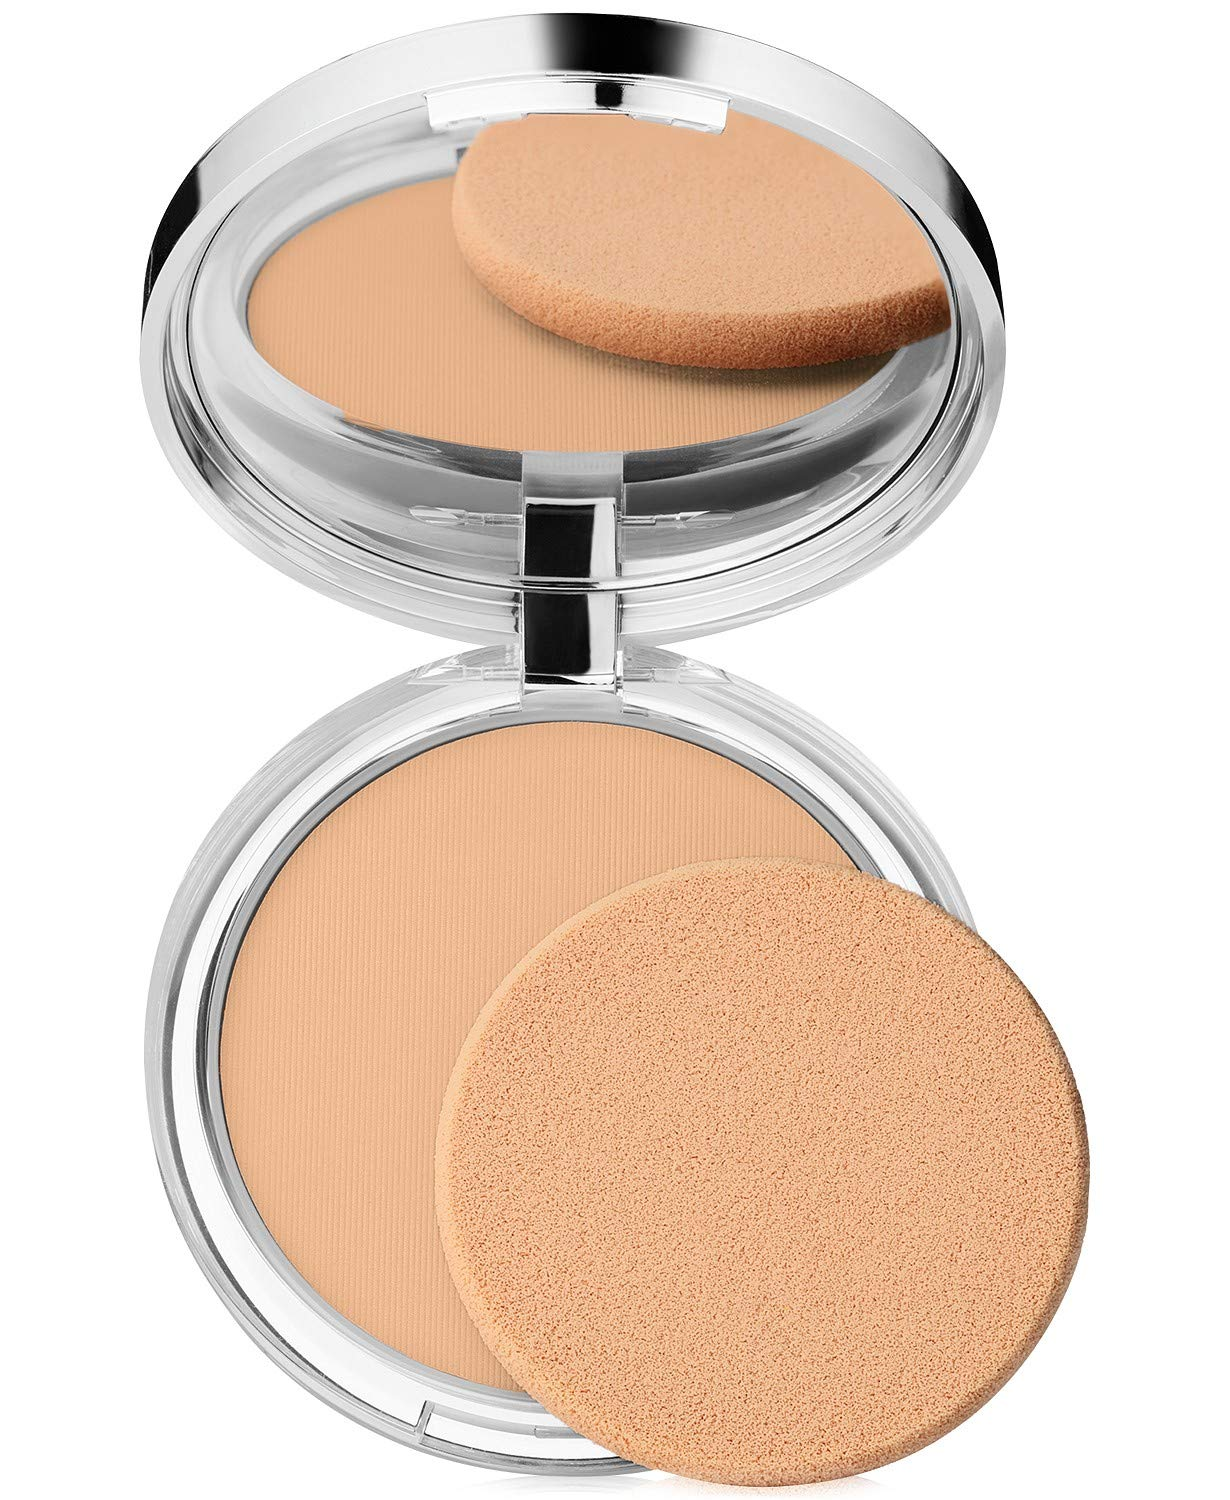 New! Clinique Stay-Matte Sheer Pressed Powder, 0.27 oz / 7.6 g, 03 Stay Beige (MF/M)